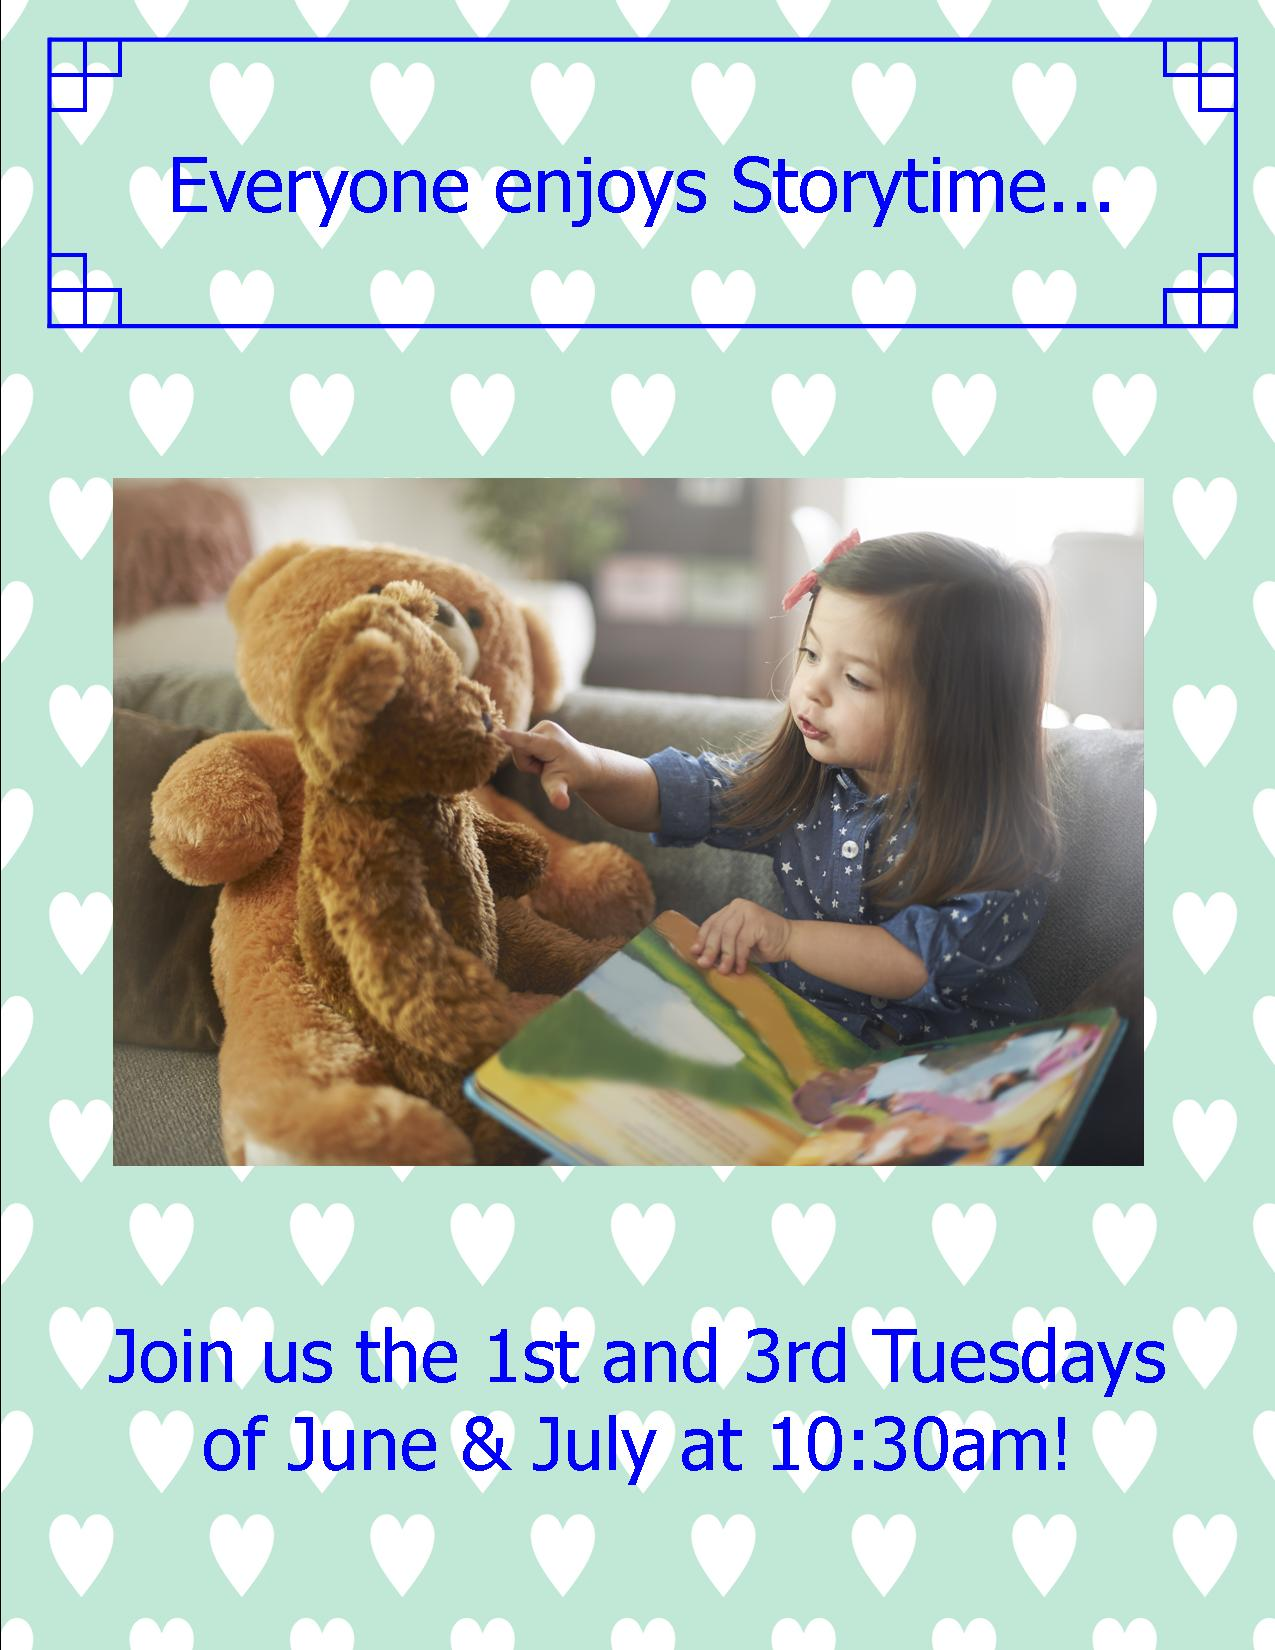 Everyone loves storytime! 1st and 3rd Tuesdays at 10:30am, June - July